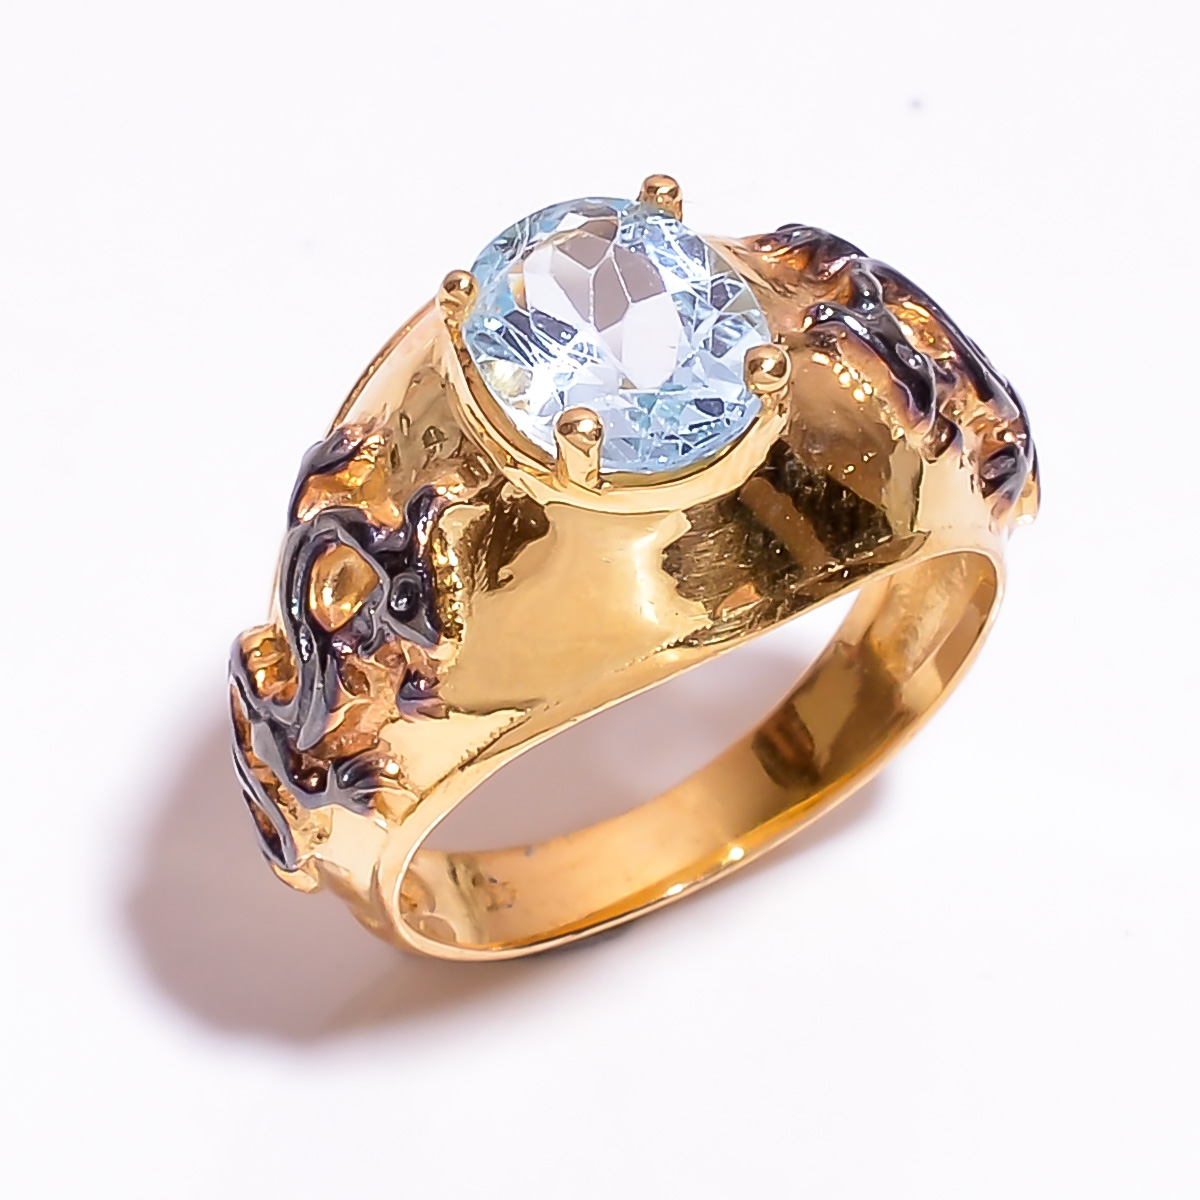 925 Sterling Silver Gold Plated & Black Rhodium Two Tone Blue Topaz Ring Size 7